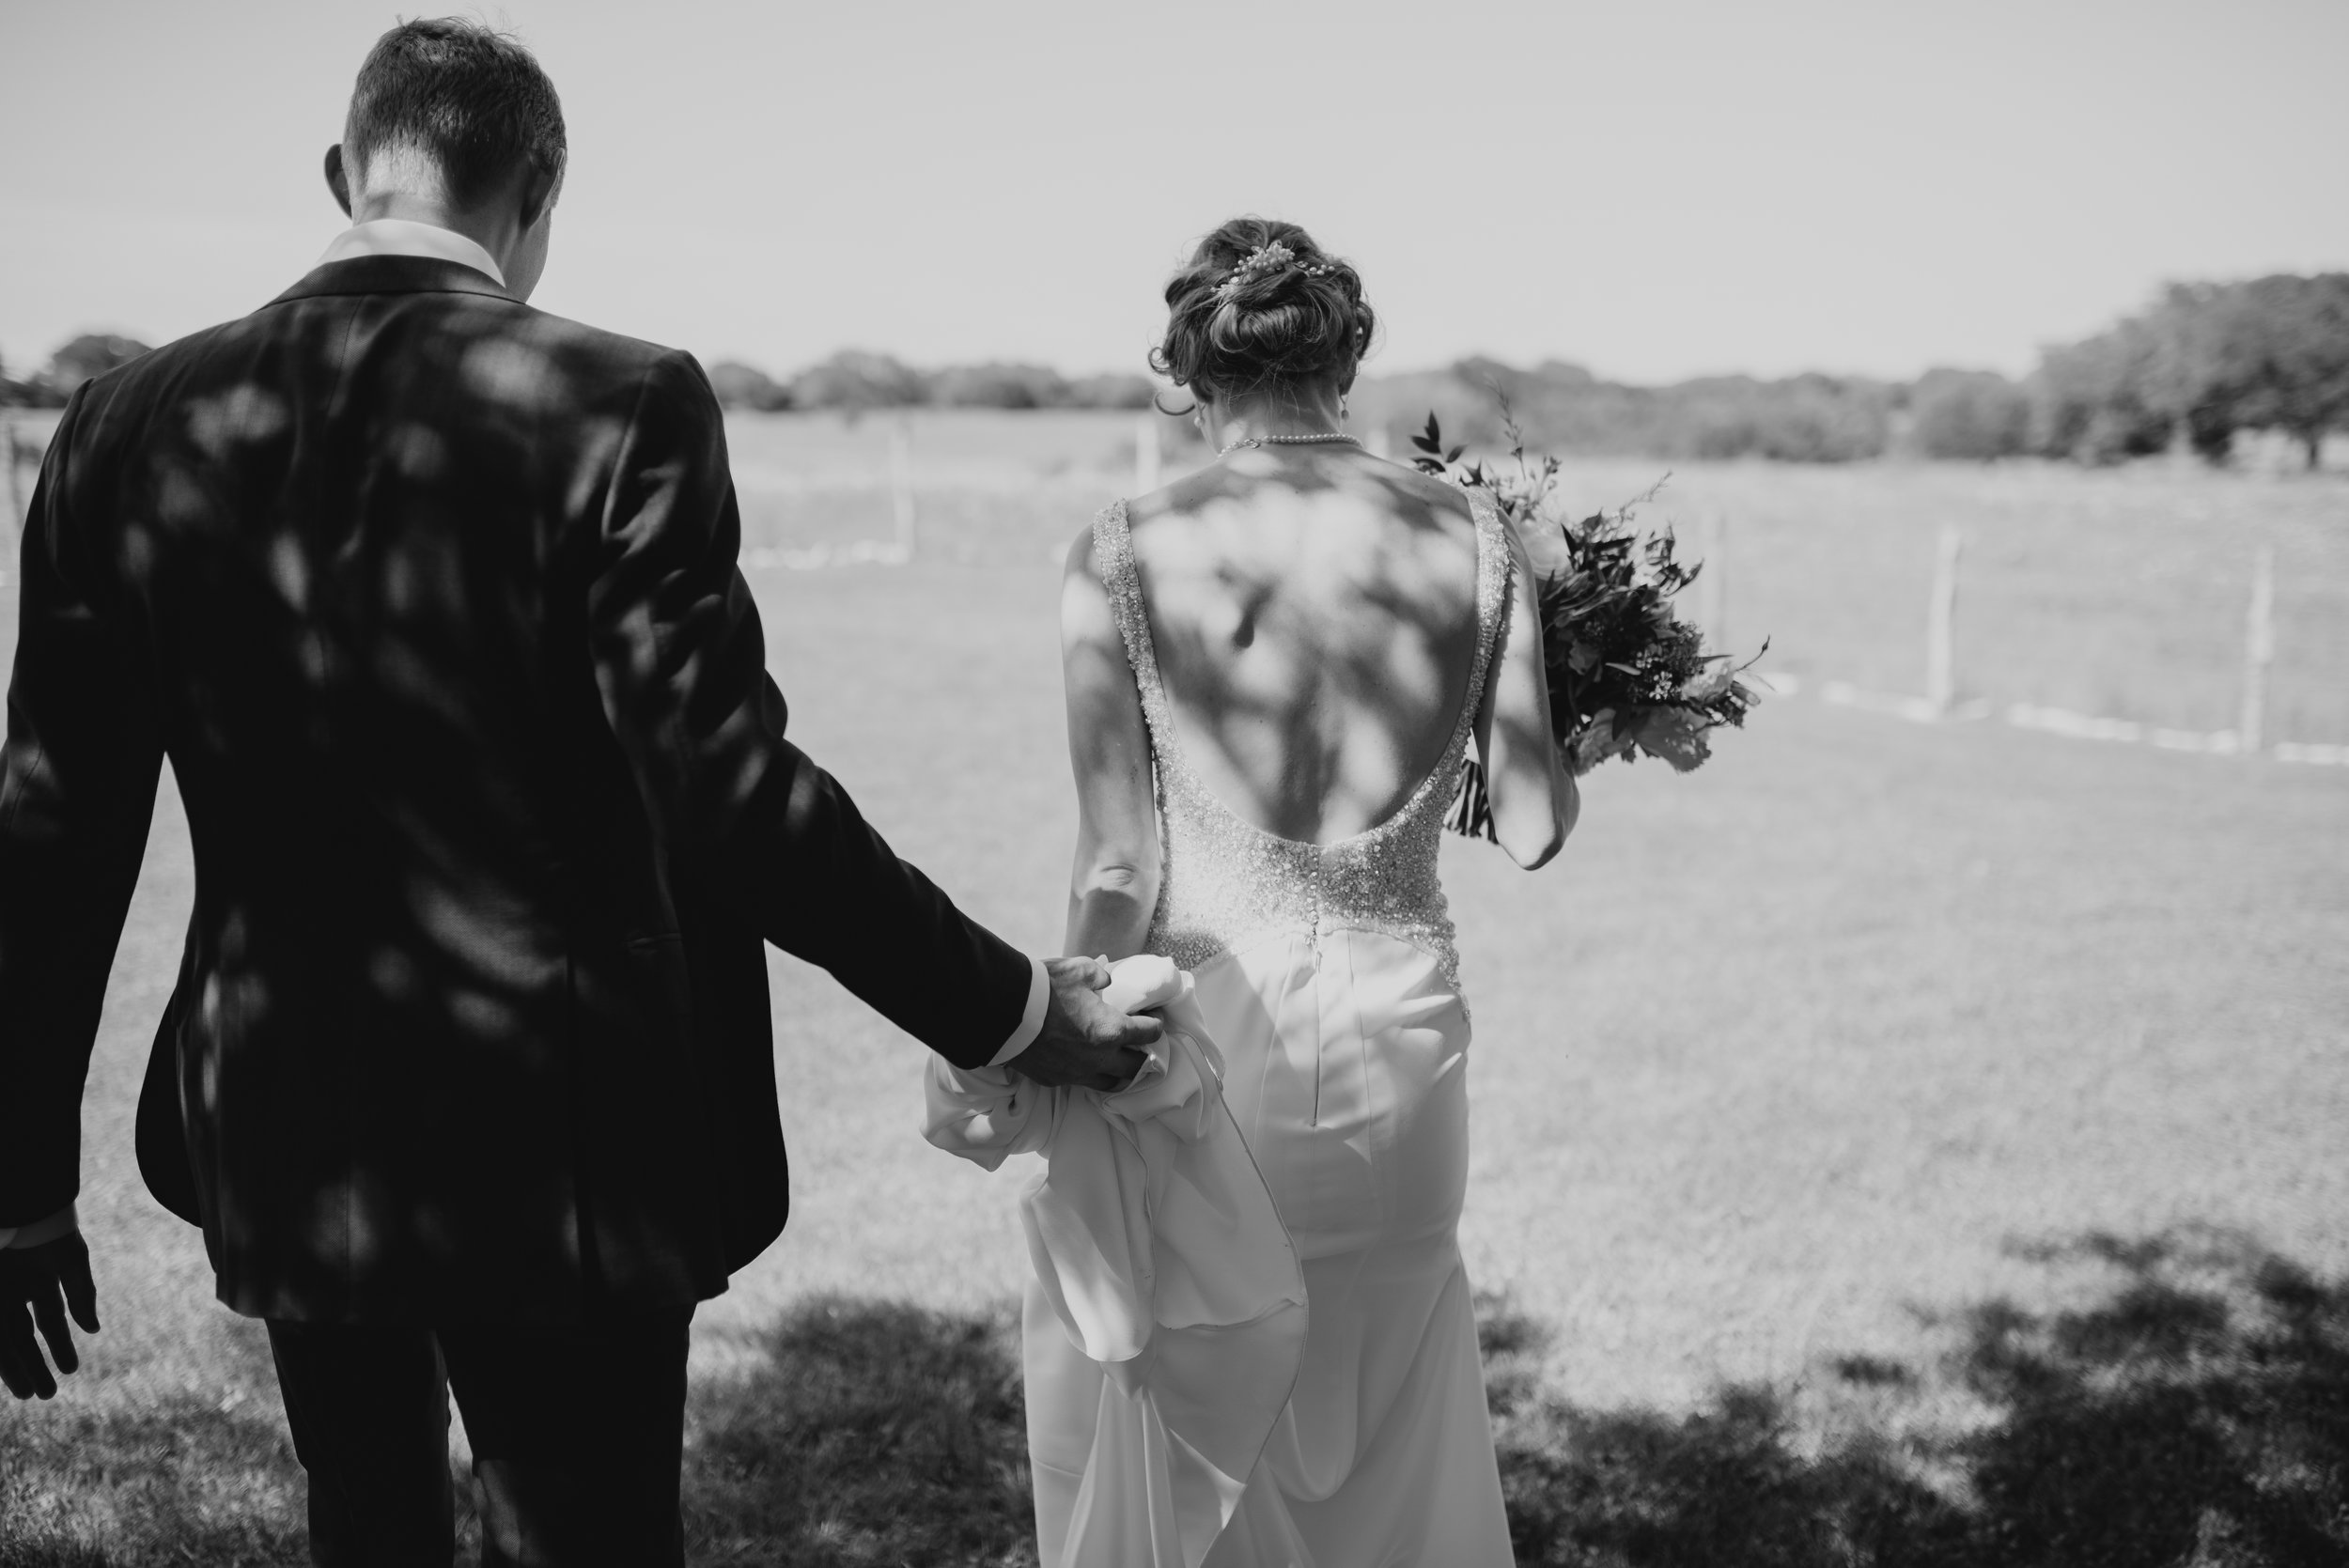 Megan+Sam Wedding-174.JPG